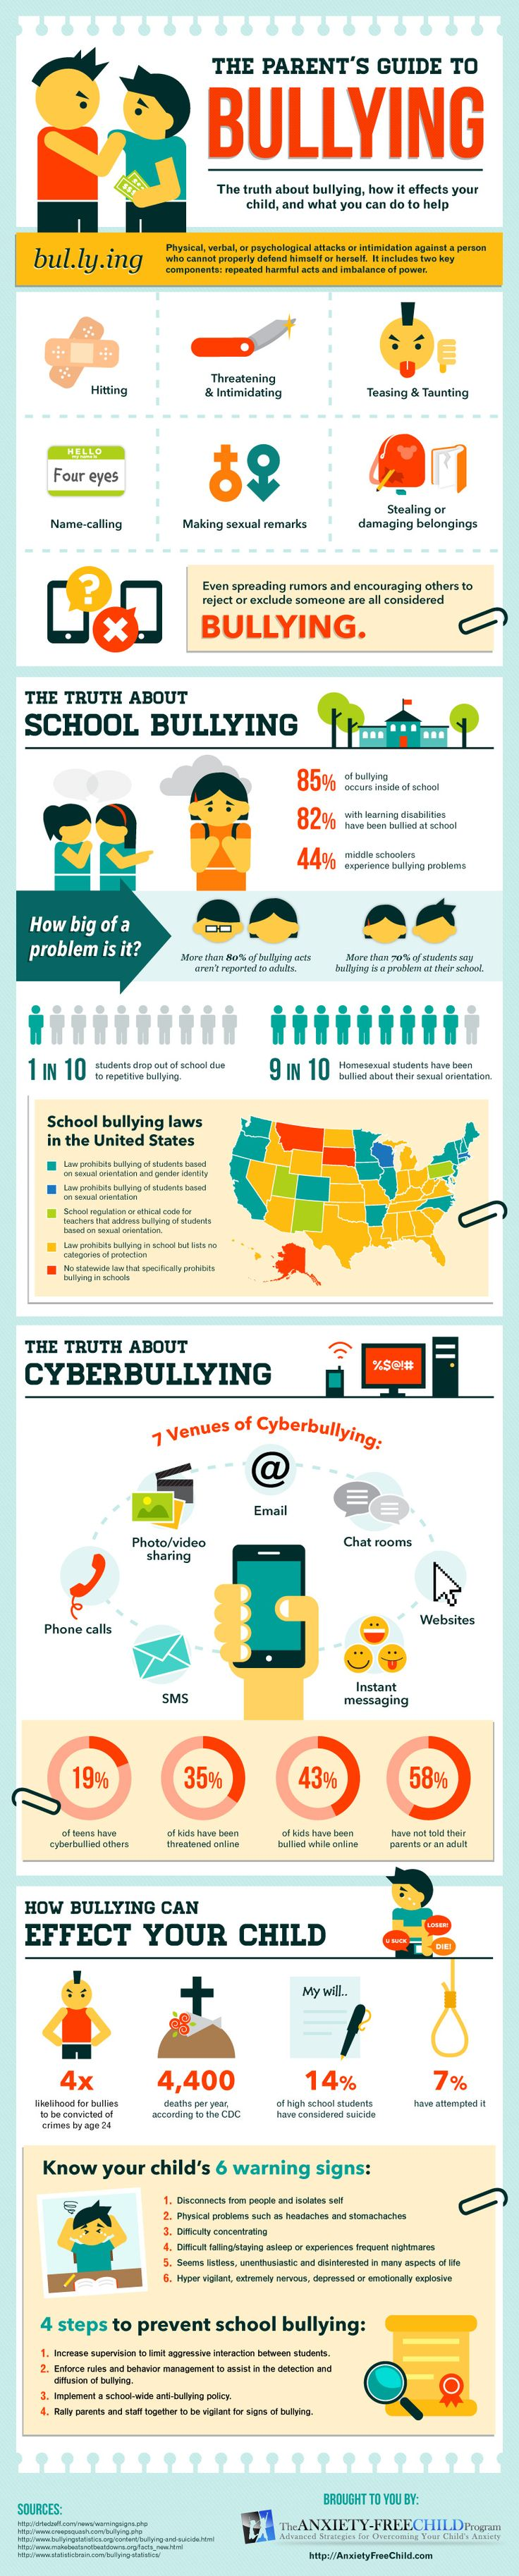 The Parent's Guide To Bullying And Child Anxiety [infographic]  Learn How  Bullying Can